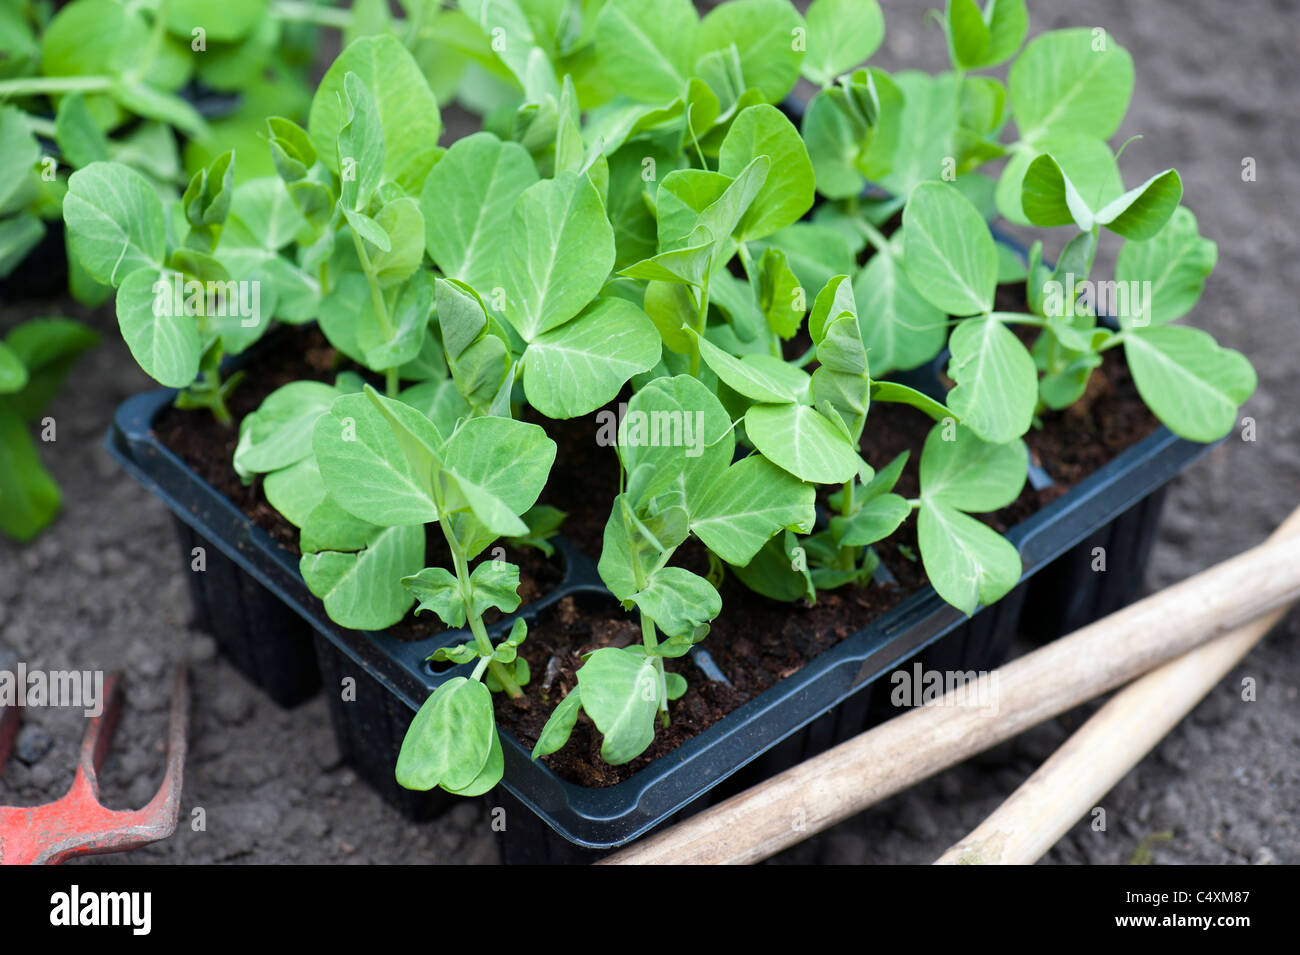 Young Garden Pea Plants Ready For Planting Out In The Garden - Stock Image